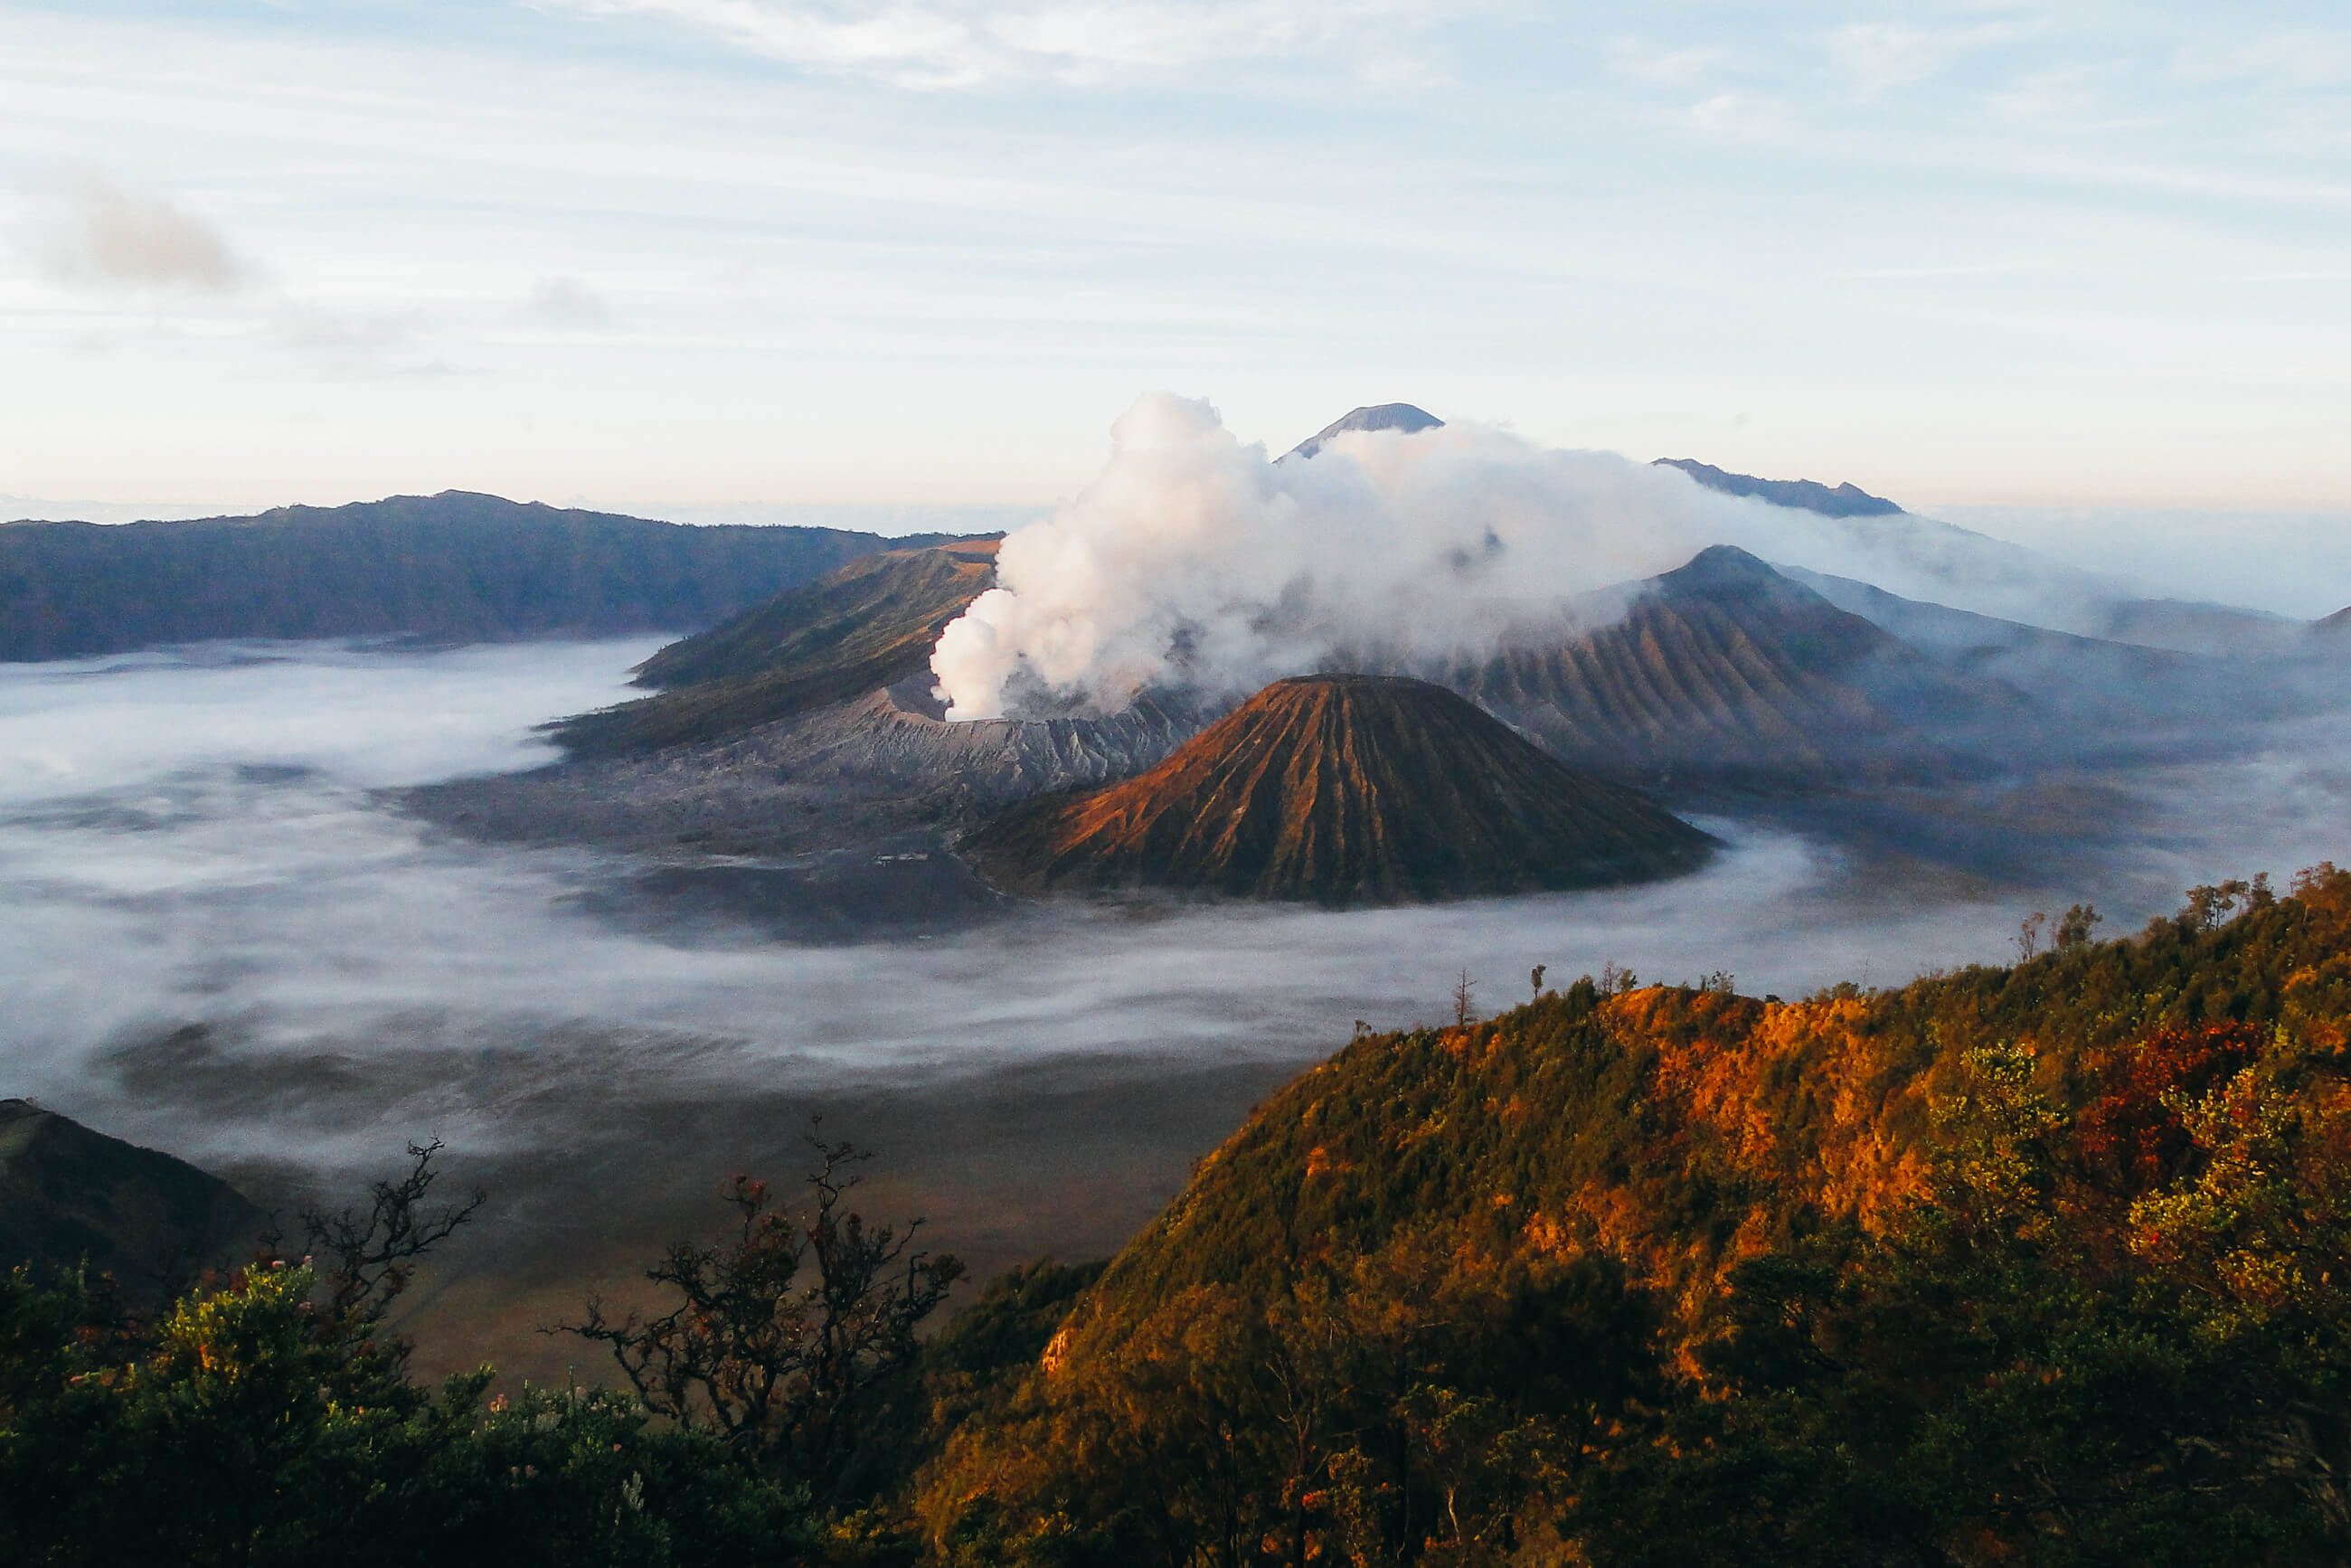 https://bubo.sk/uploads/galleries/7329/archiv_indonezia_java_bromo_dsc03120-17.jpg